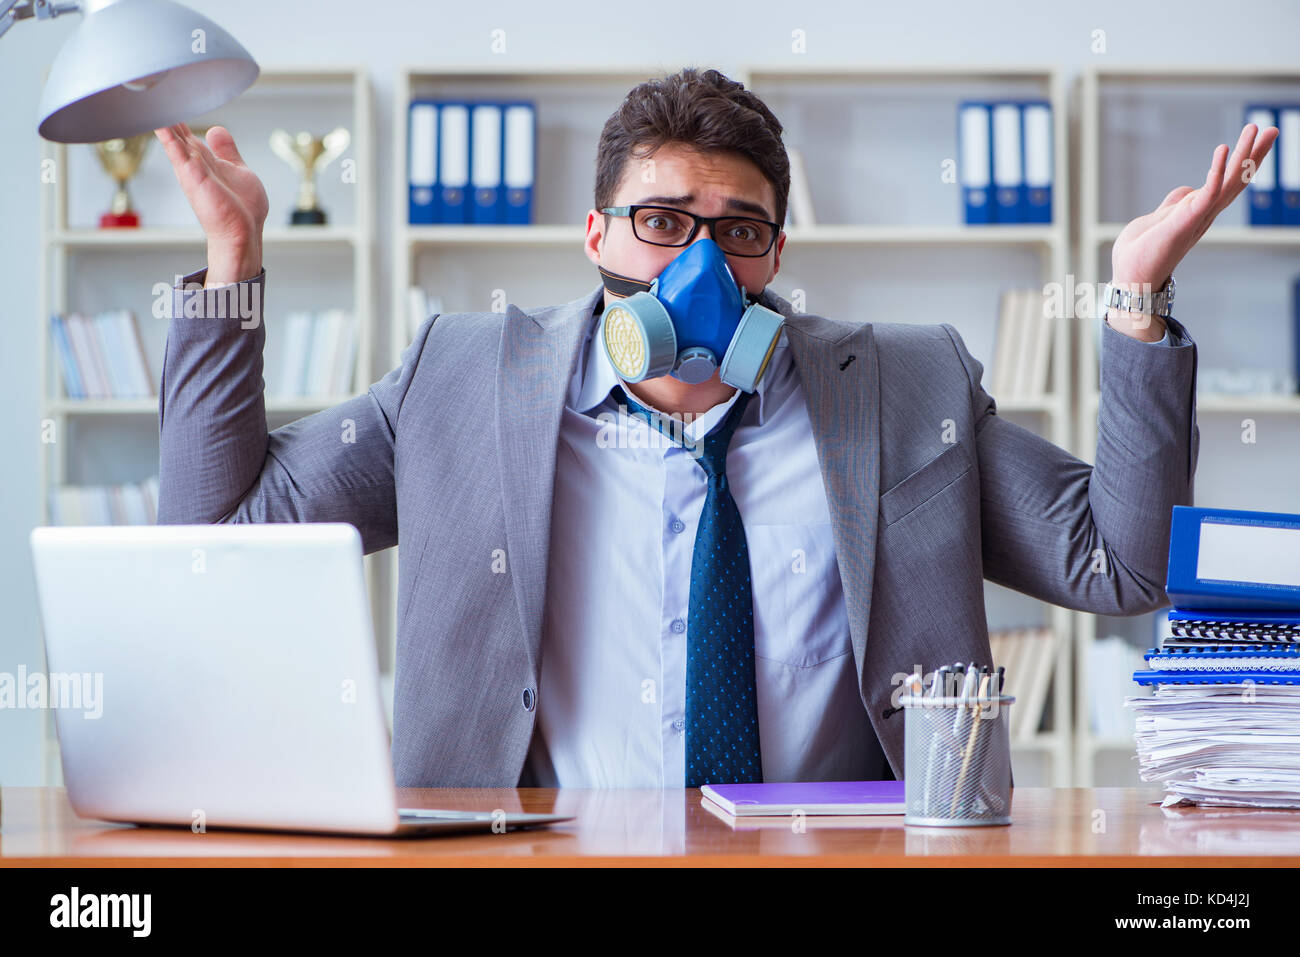 how to stop sweating in the workplace